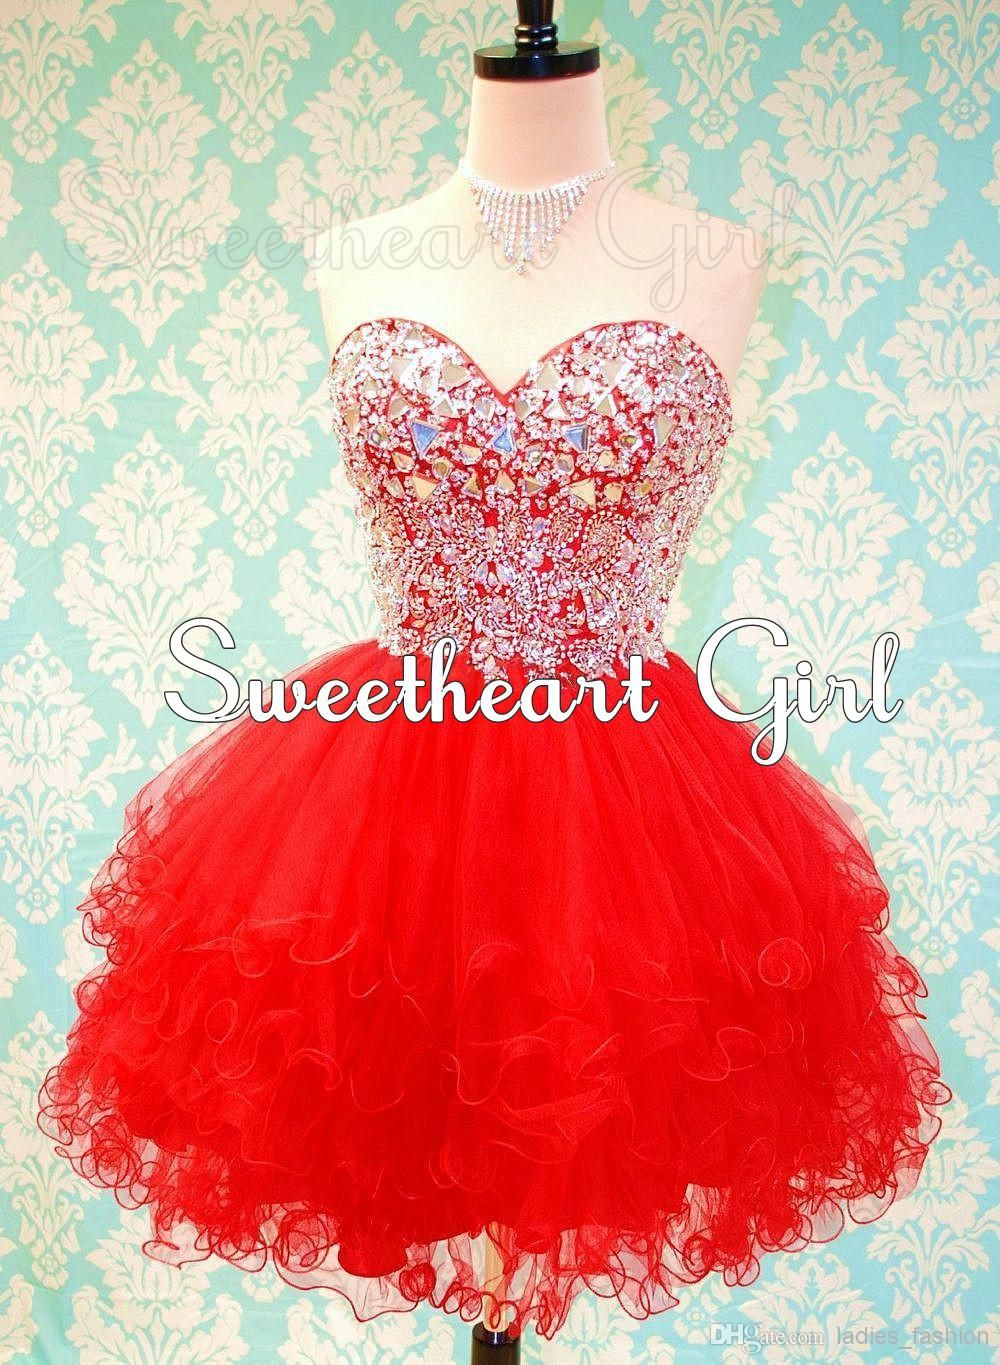 This would probably look good in another color | Dresses | Pinterest ...